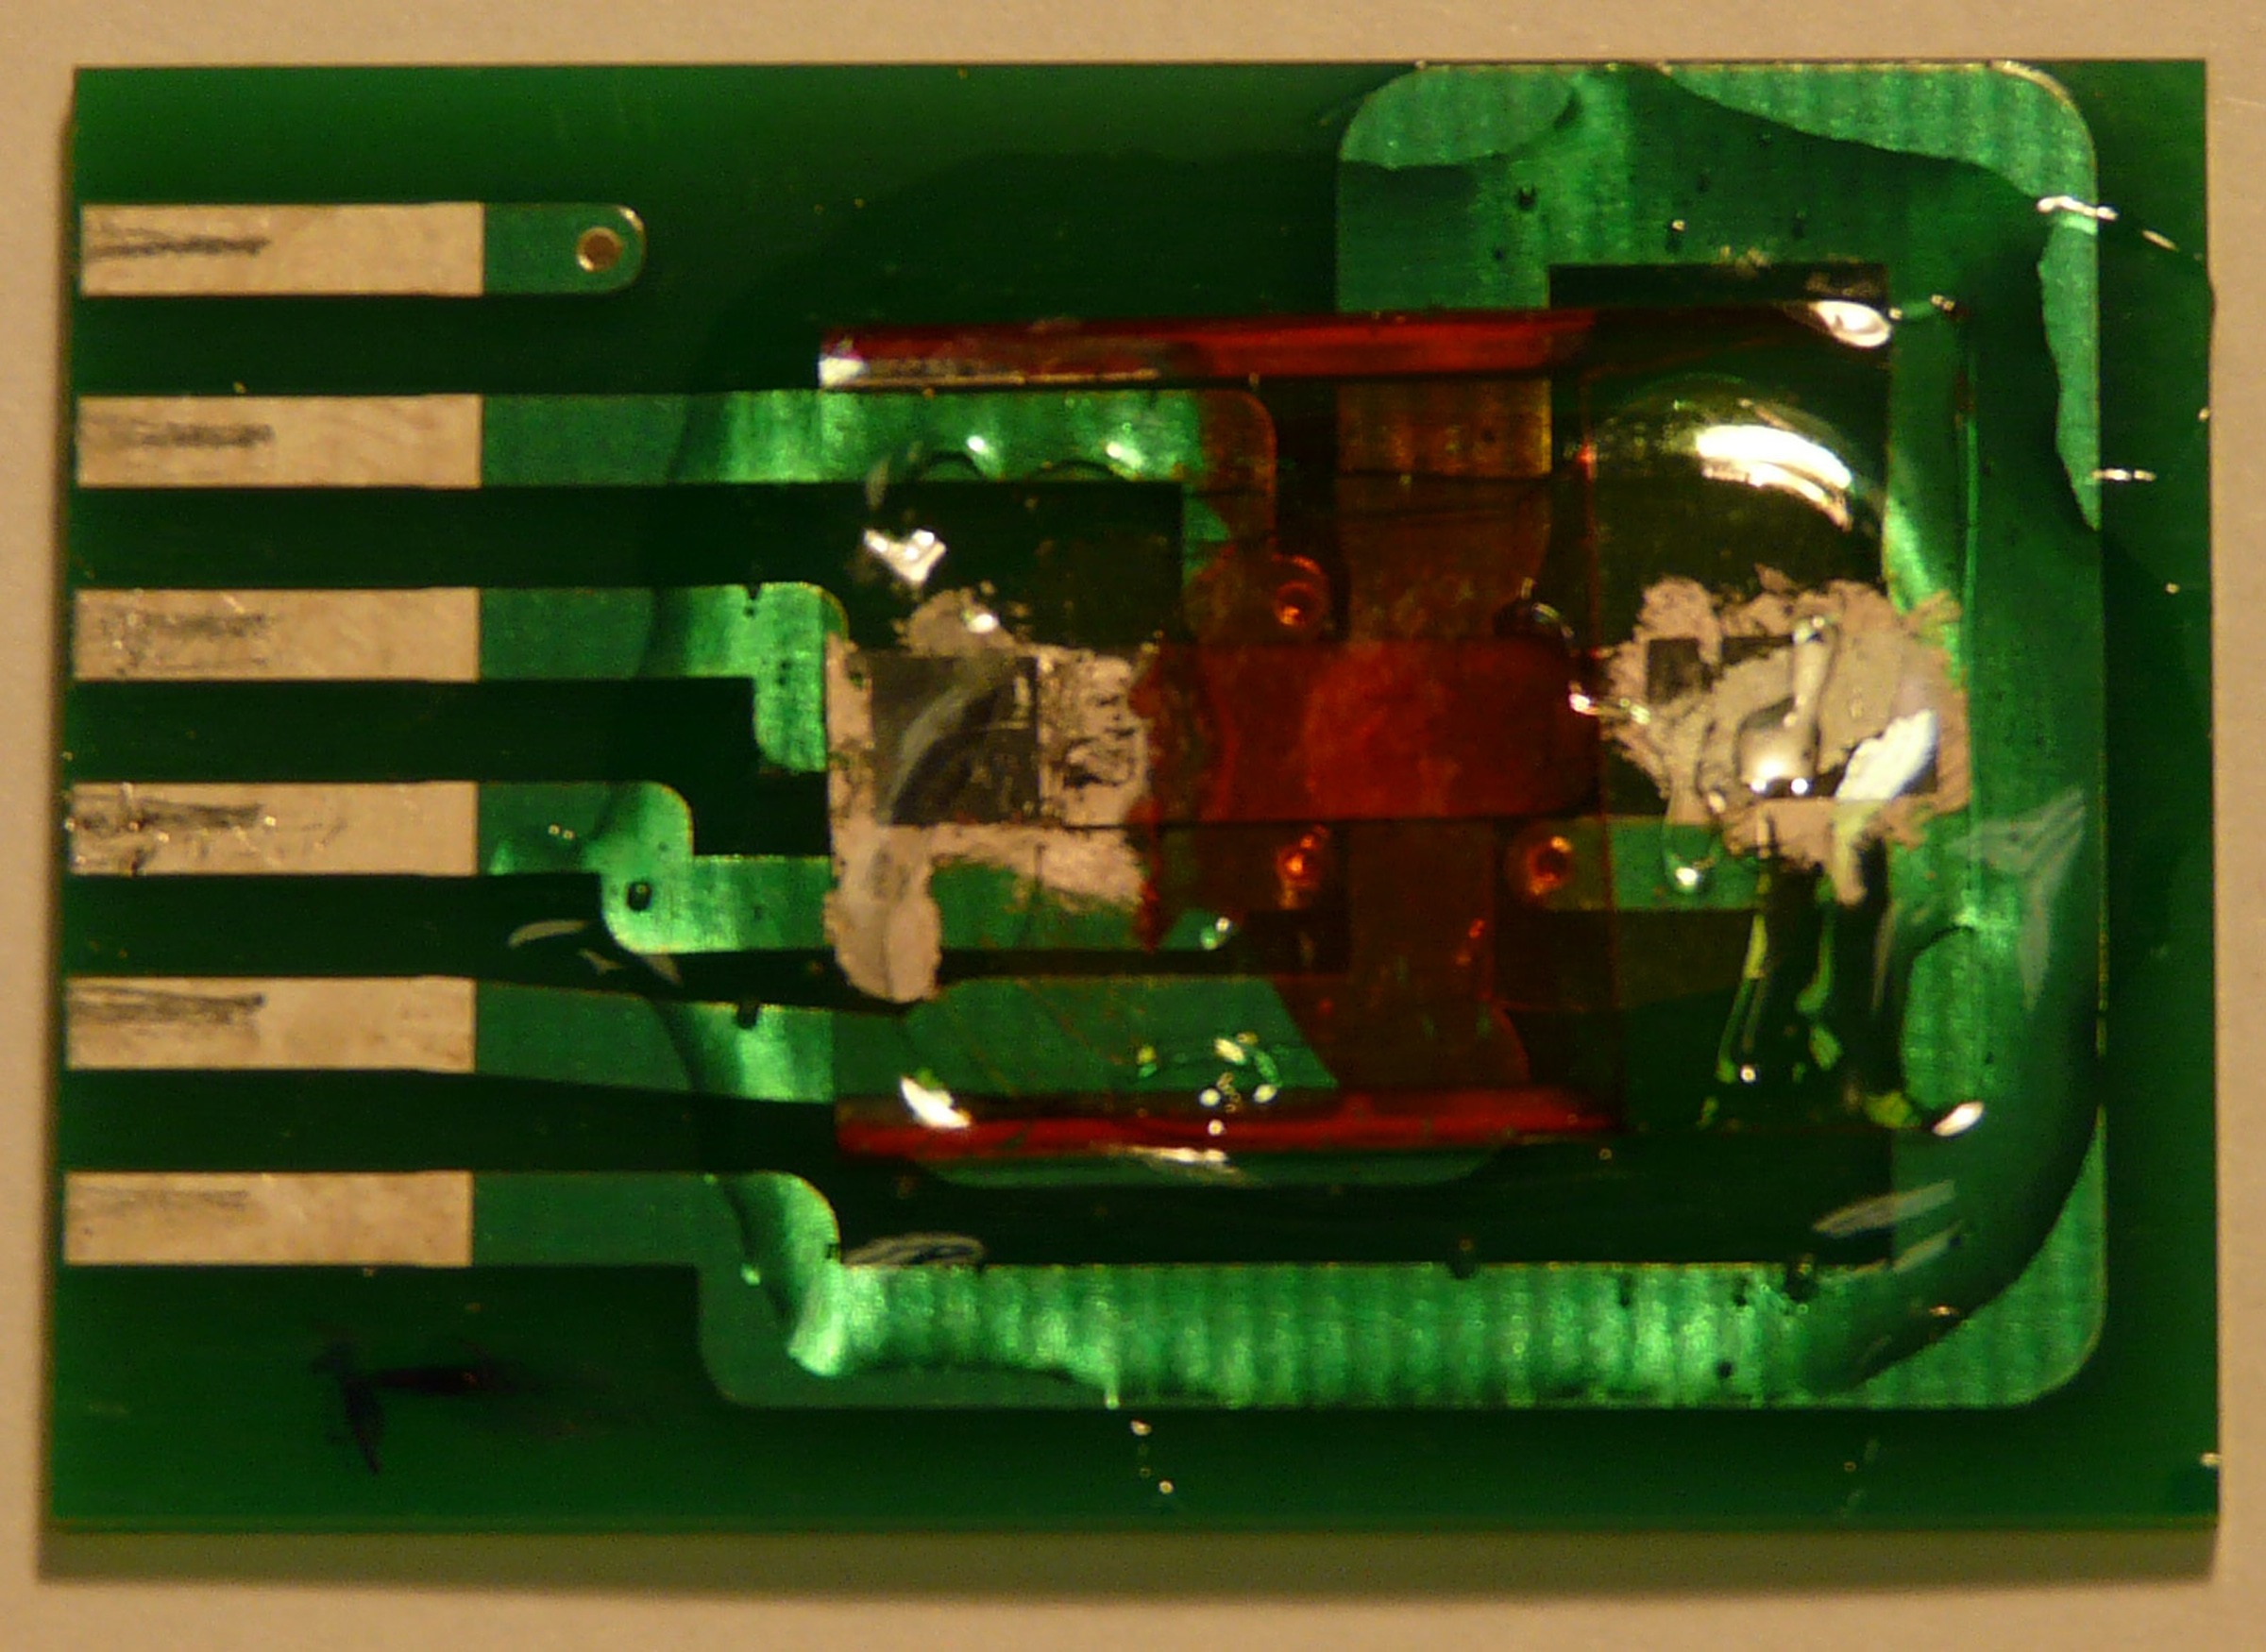 """An inexpensive and highly accurate """"spintronic"""" magnetic field sensor developed at the University of Utah is shown here. The entire device, on a printed circuit board, measures about 0.8 inches by 1.2 inches. But the part that actually detects magnetic fields is the reddish-orange thin-film semiconductor – essentially """"plastic paint"""" – near the center-right of the device."""